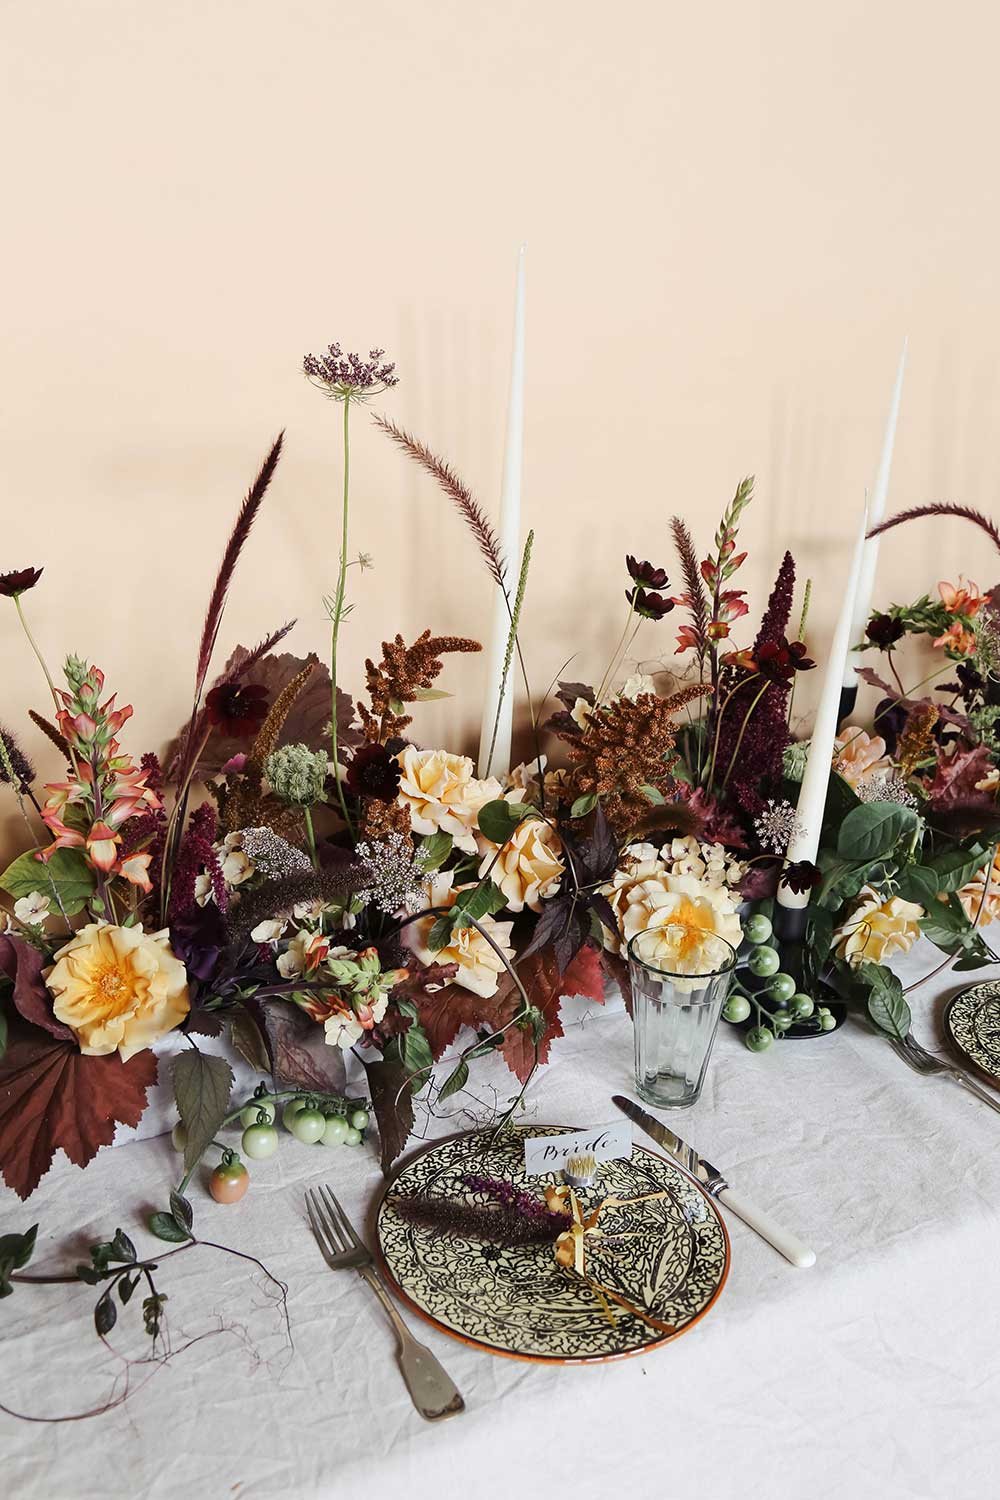 vervain-autumnal-wedding-table-flowers-10.jpg